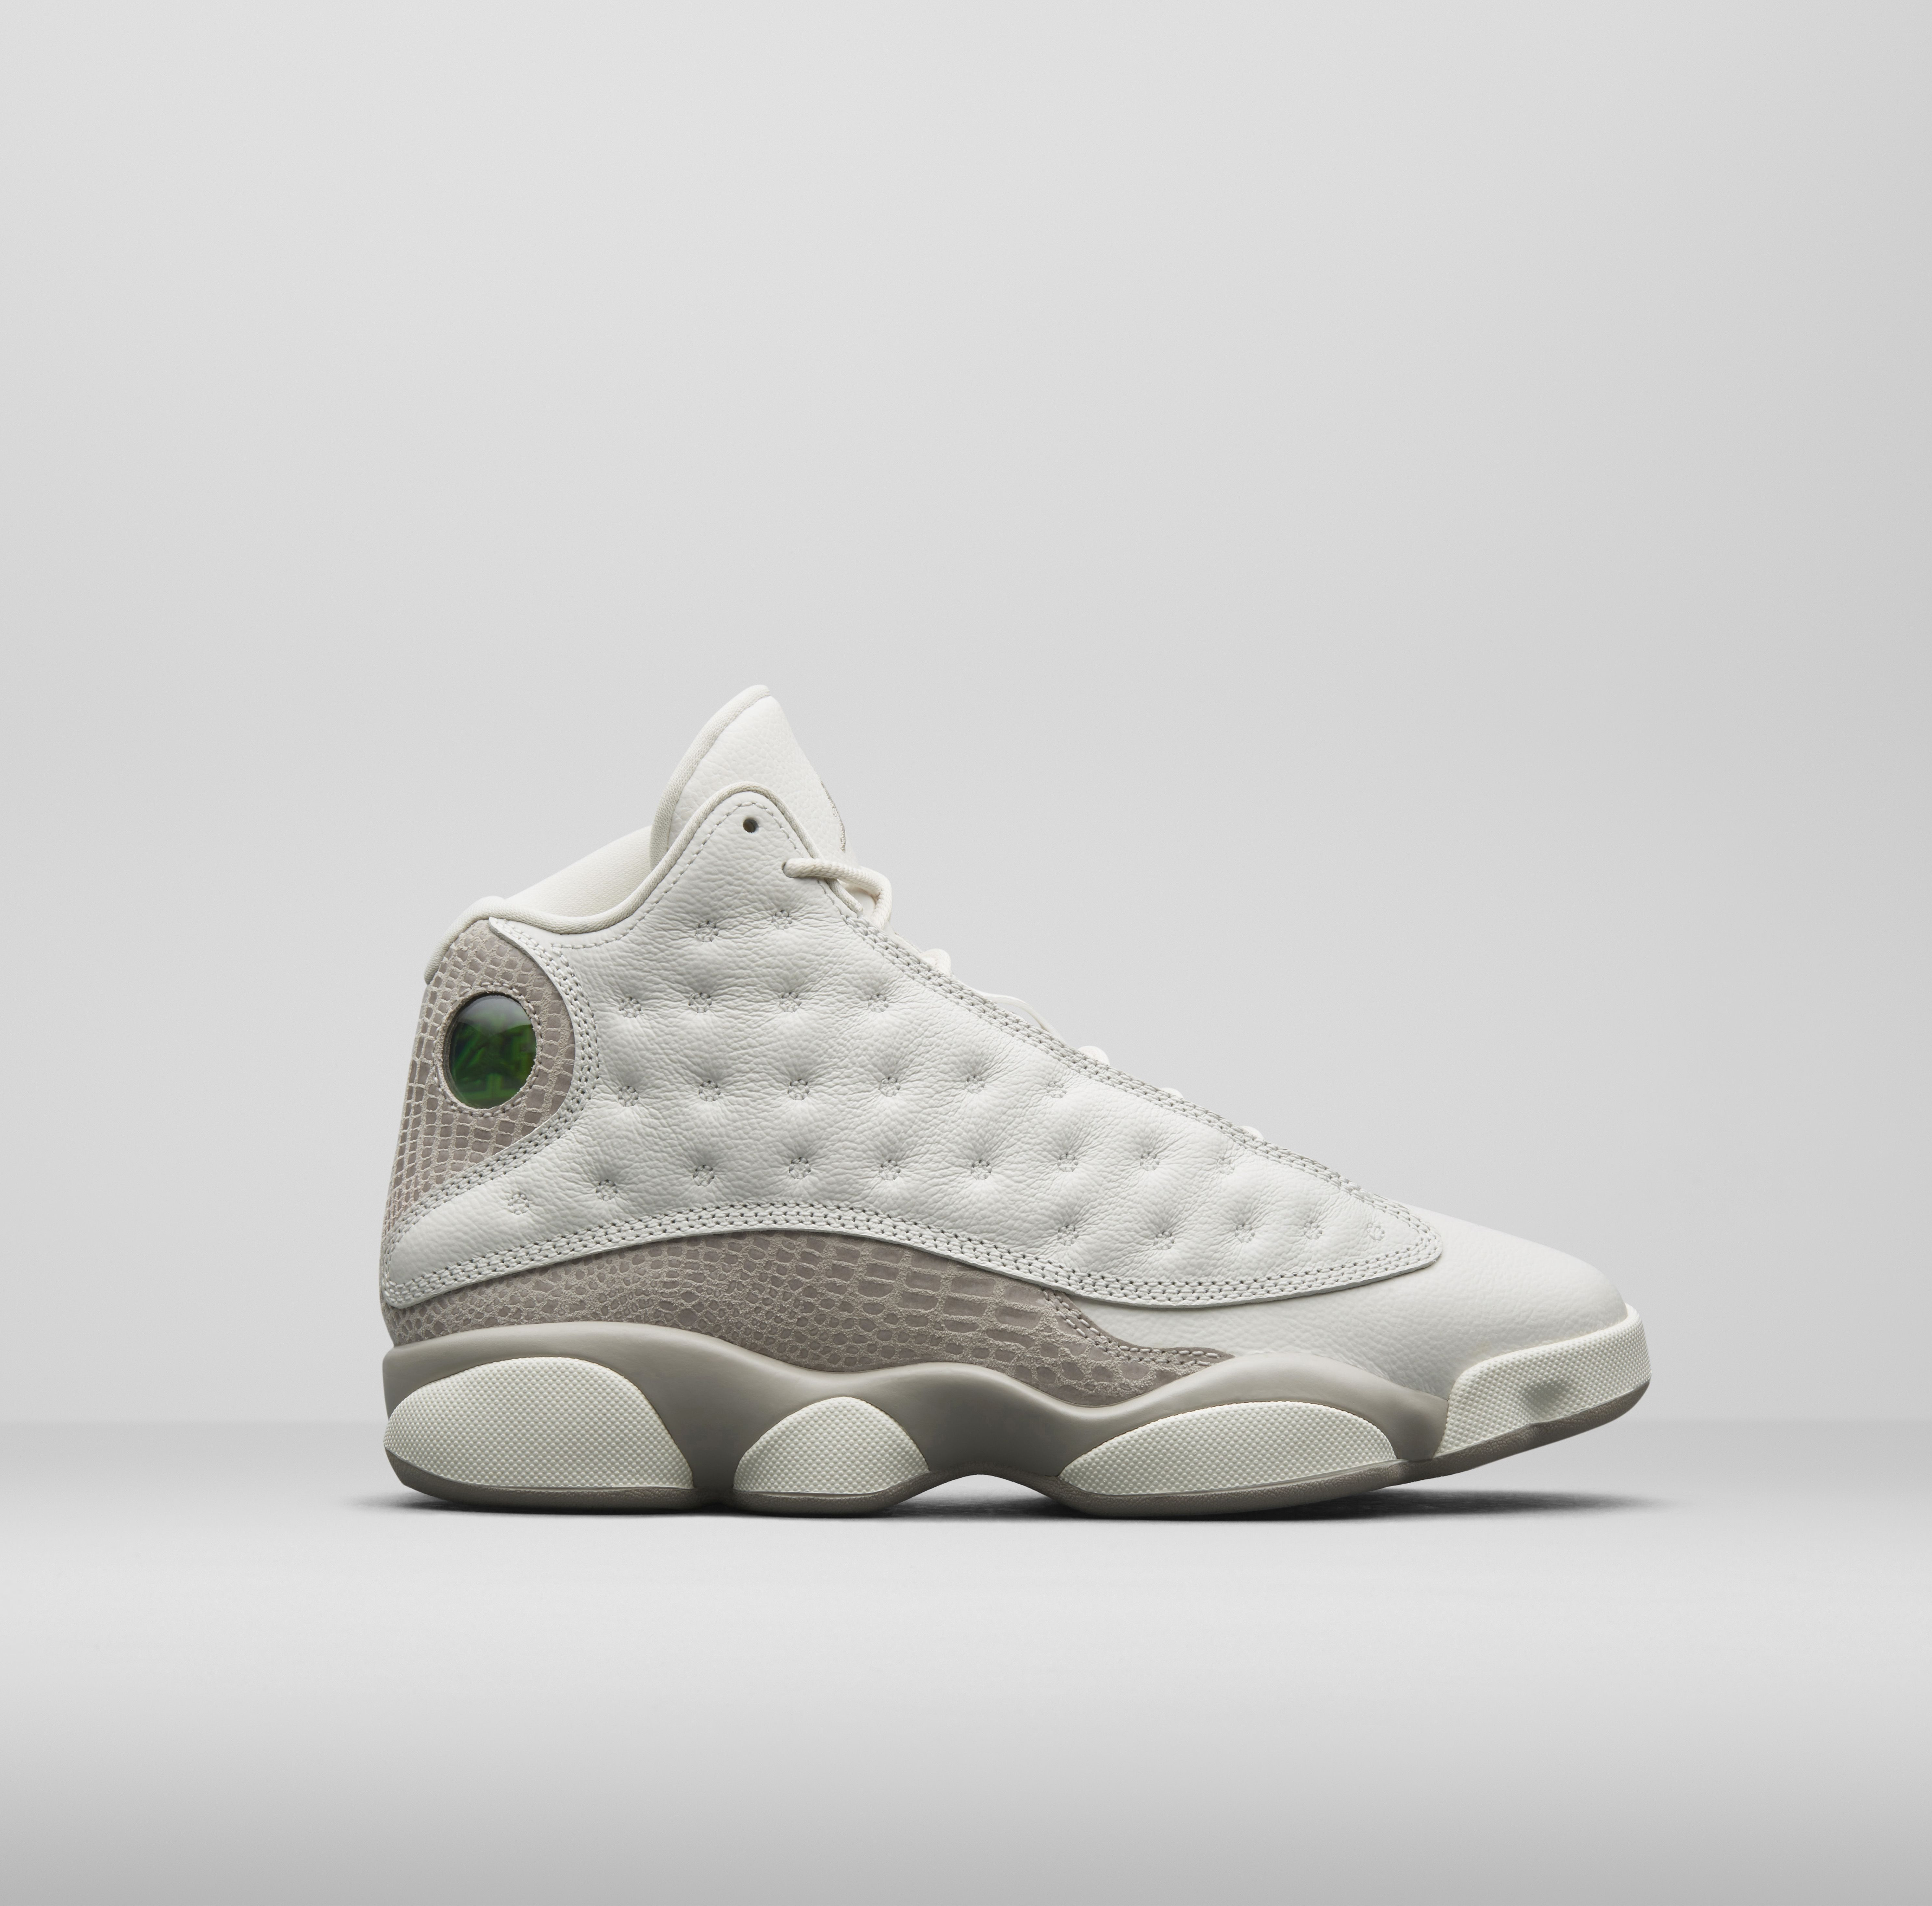 premium selection 8a5dd c01fd The Air Jordan XIII  Moon Particle  is available 7.27